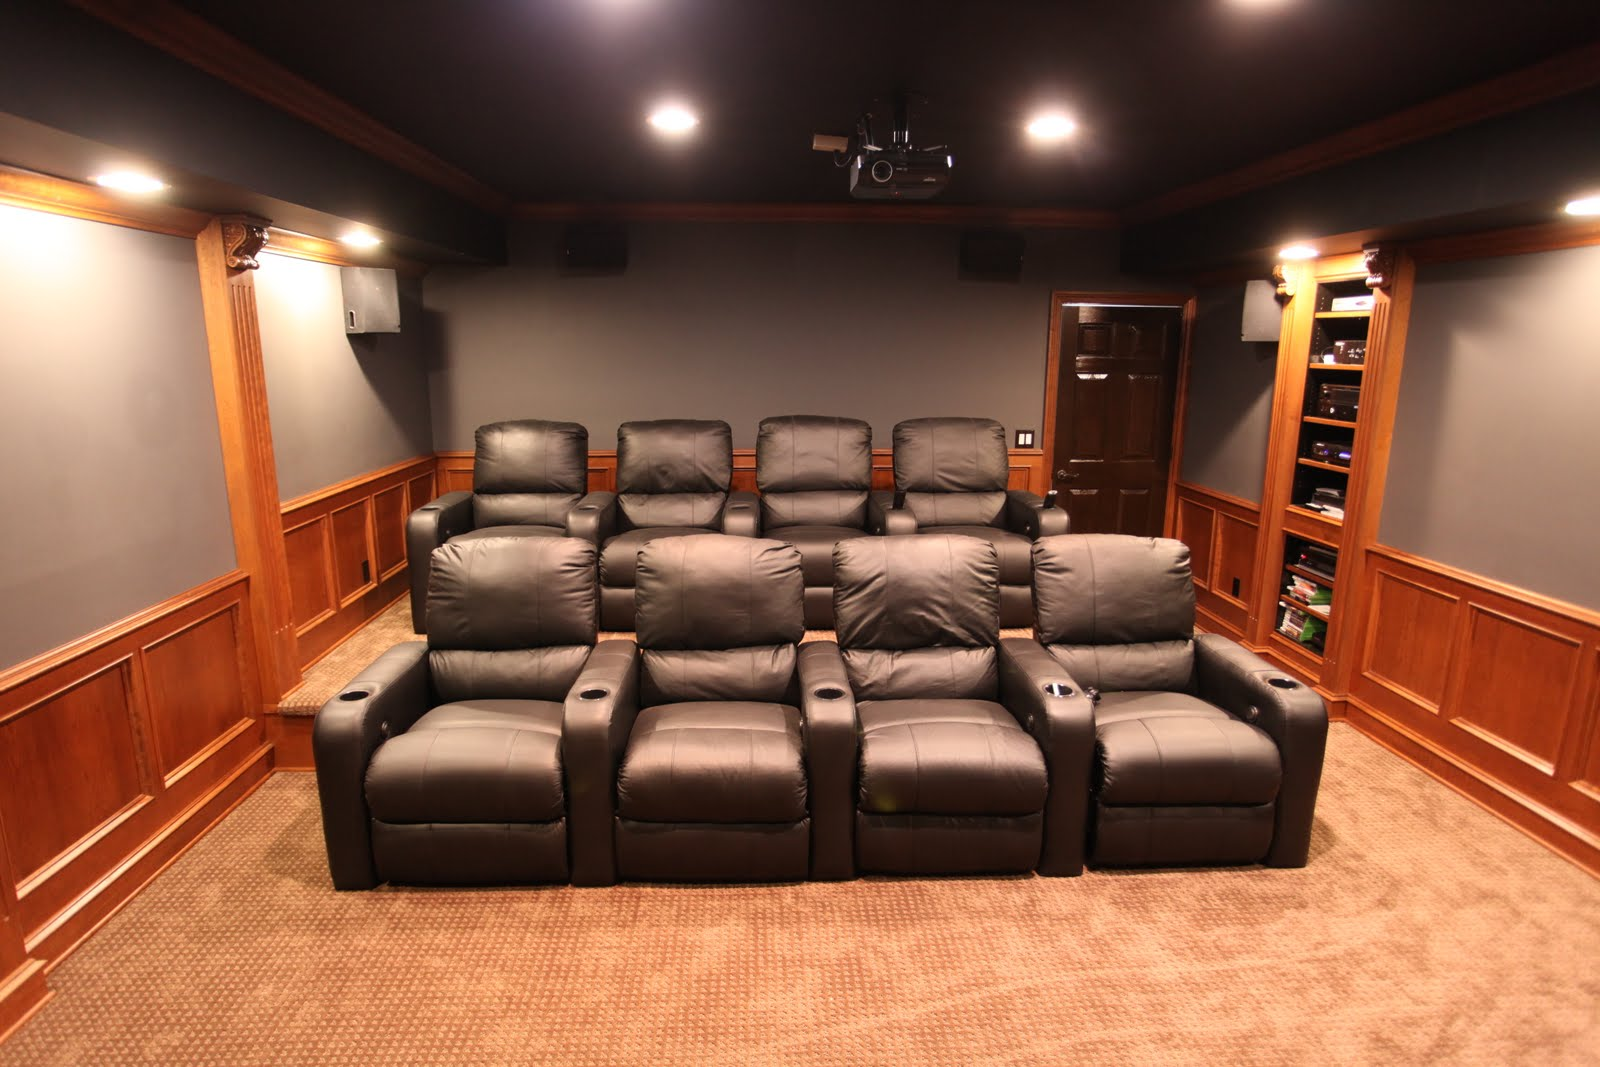 10 x 10 home theater room design and ideas - Home theater room designs ideas ...